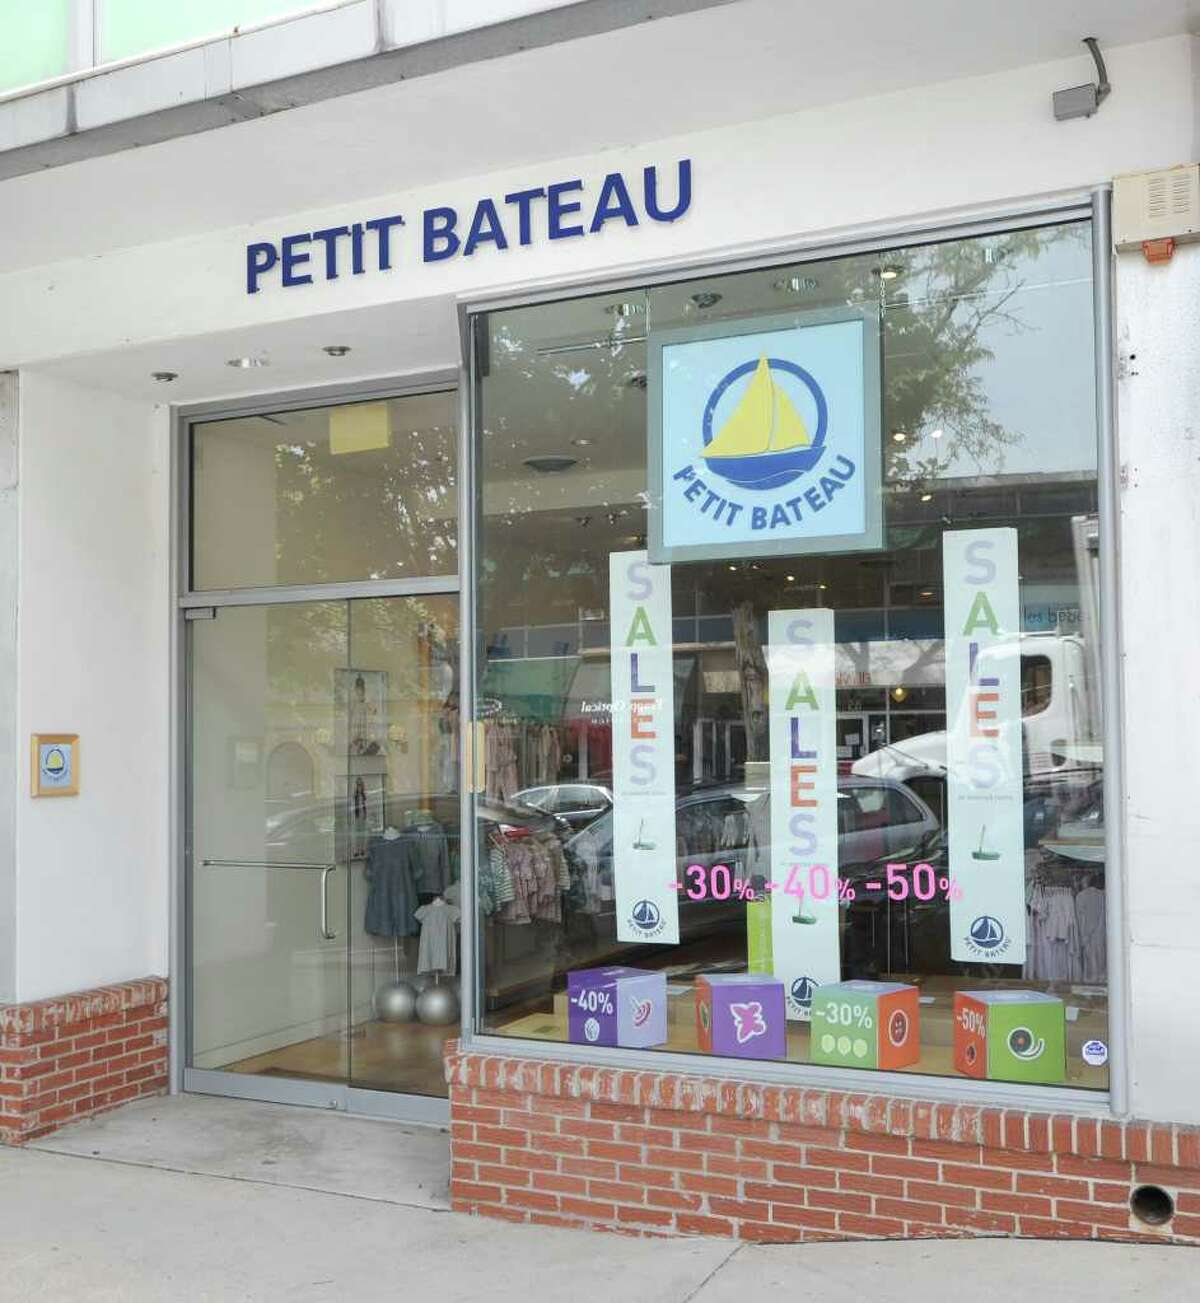 Petit Bateau at 84 Greenwich Avenue as seen Wednesday, August 18, 2010.